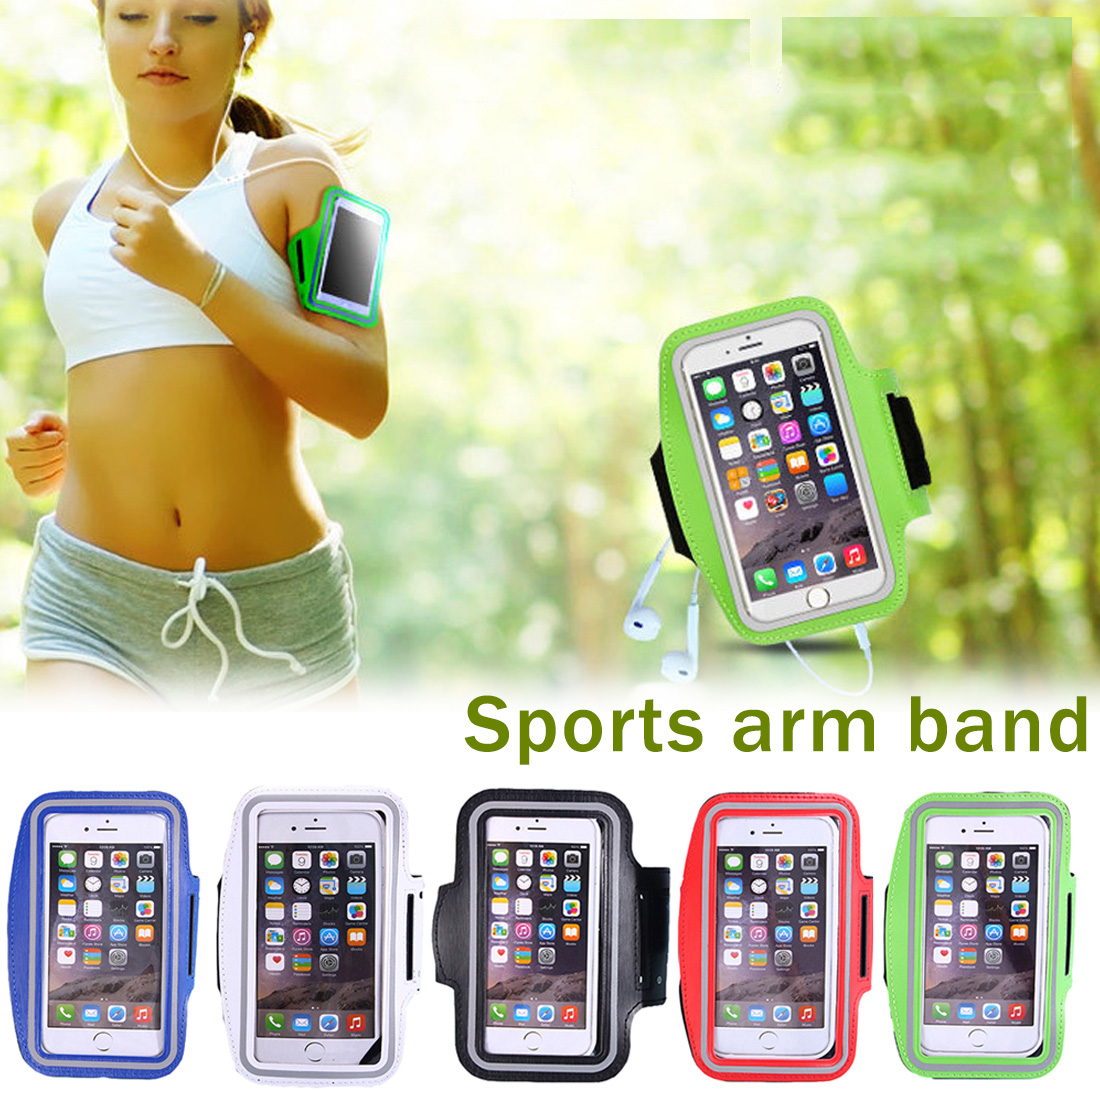 Mobile Phone Accessories Cellphones & Telecommunications Armband For Nokia Lumia 515 Sports Running Jogging Arm Band Cell Phone Holder Pouch Bag Case For Nokia Lumia 515 Phone On Hand Consumers First